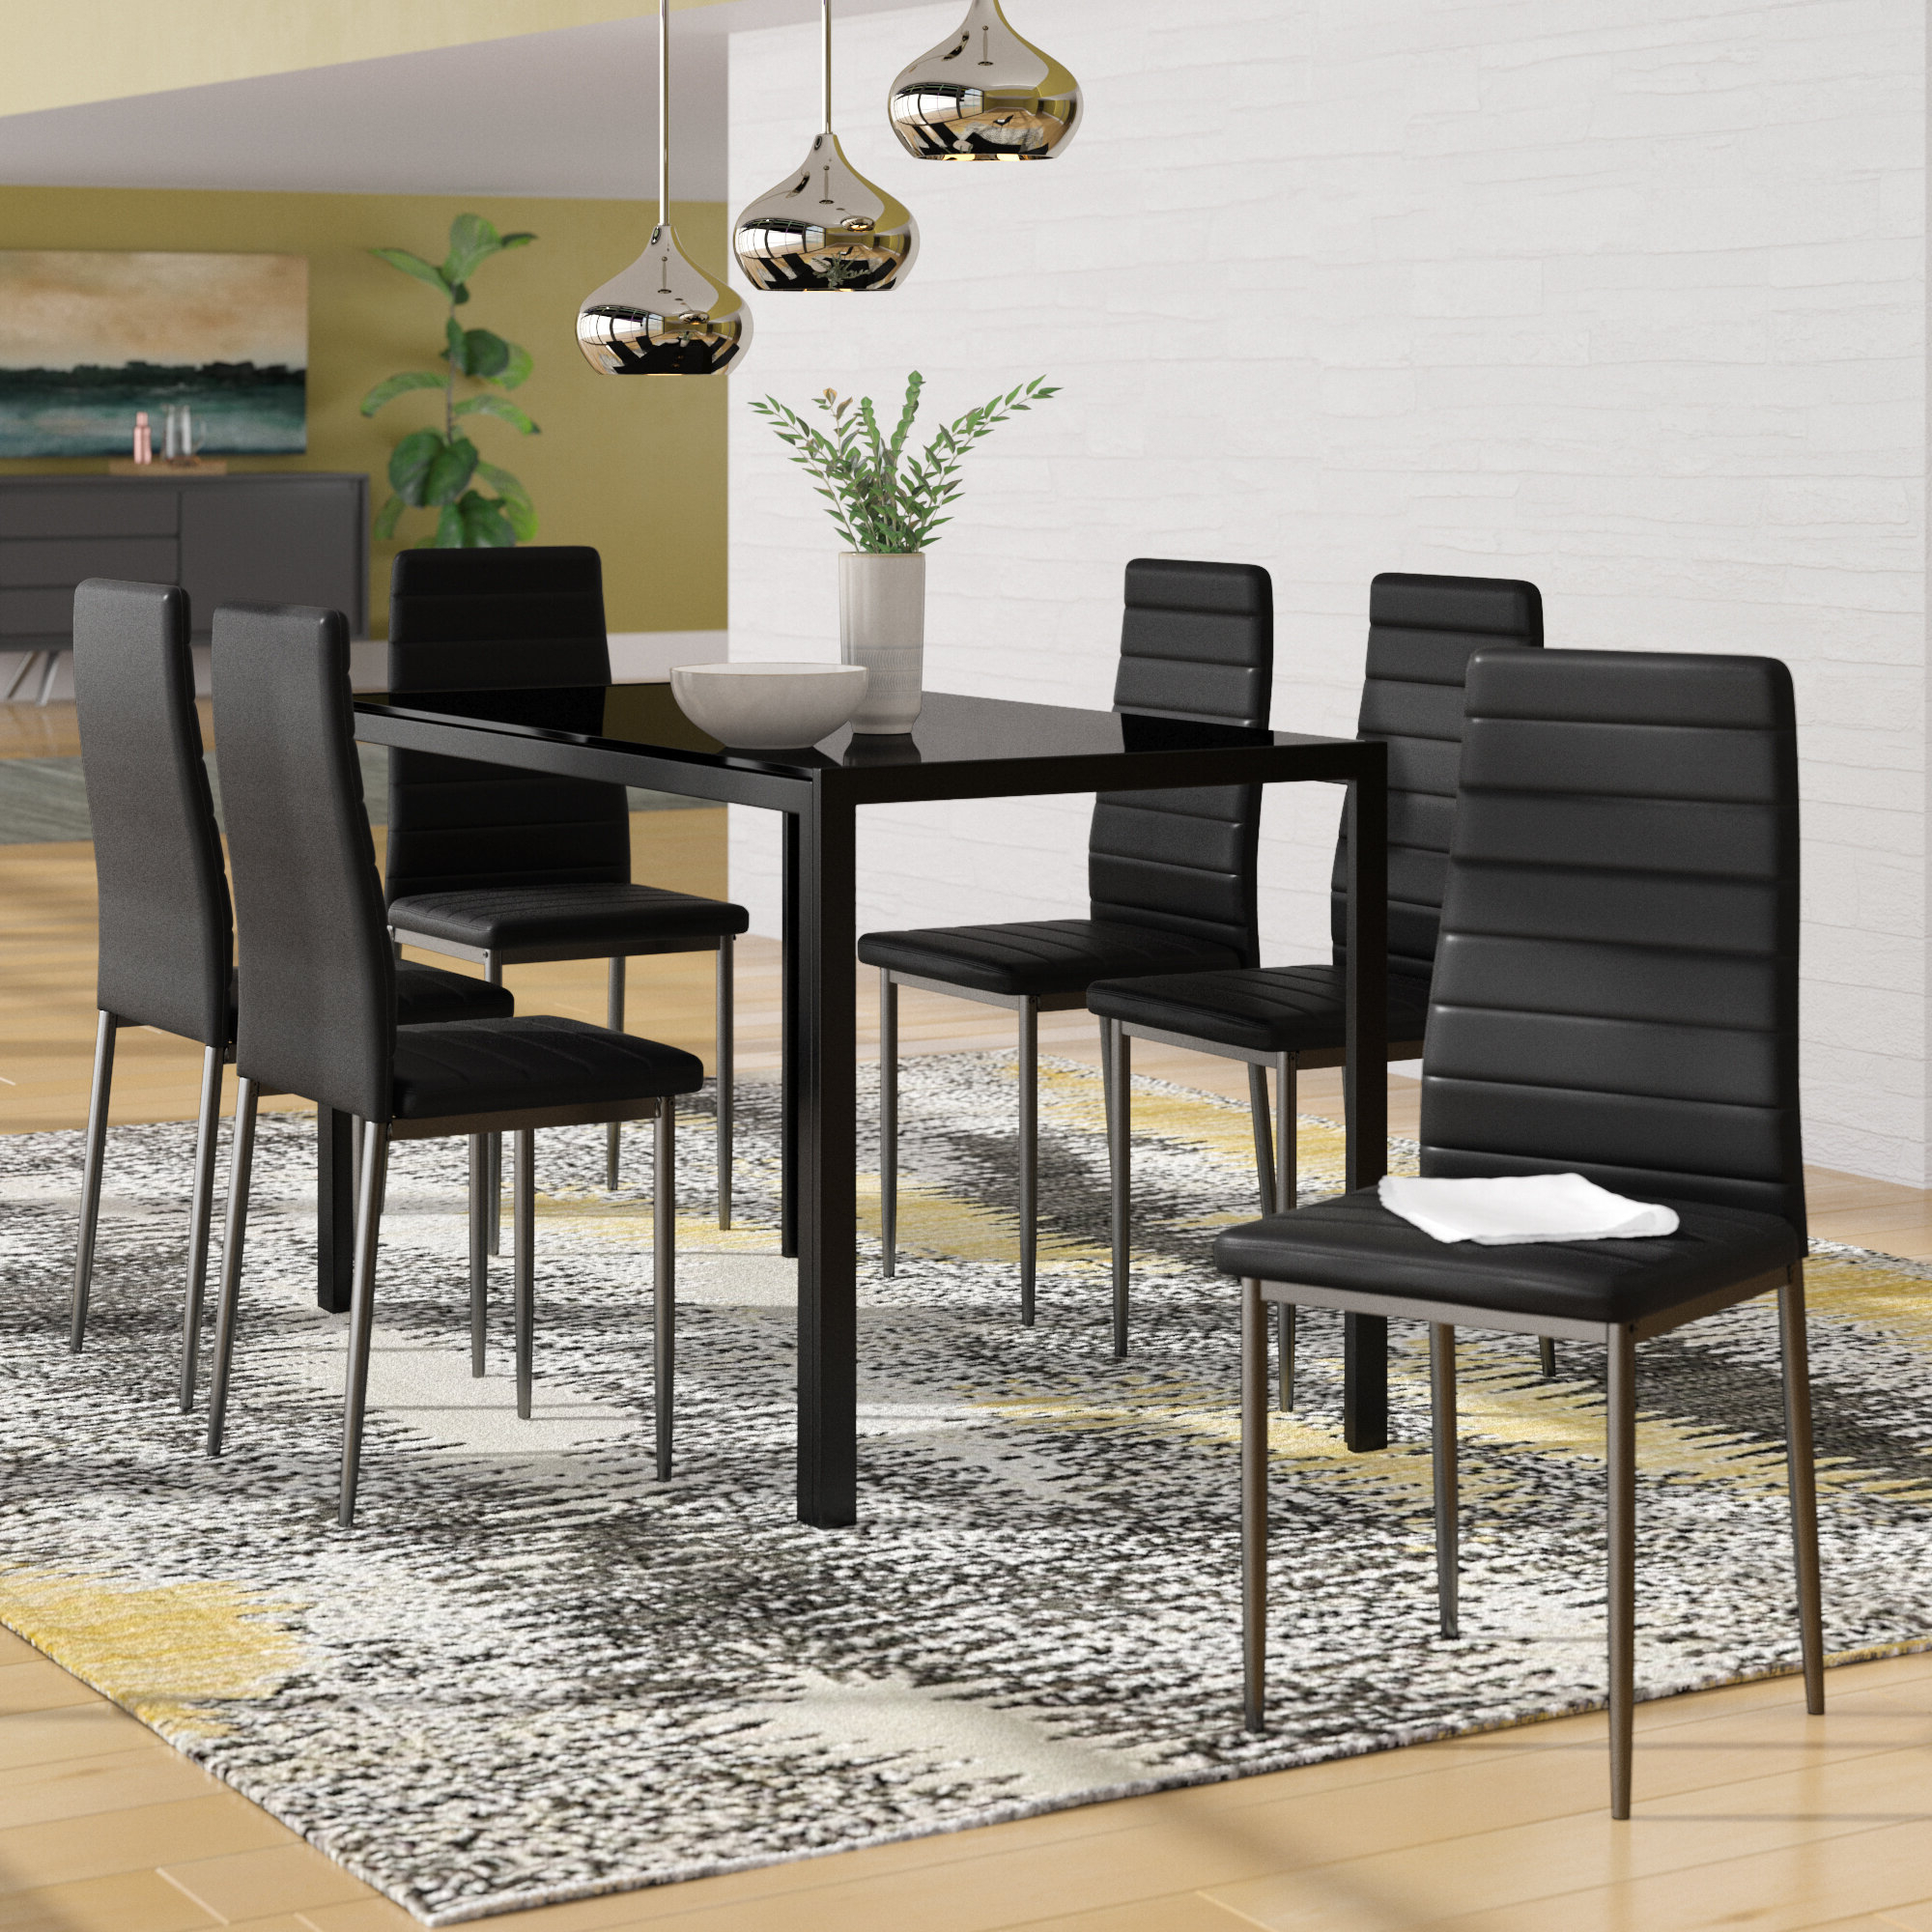 Haris 6 Piece Breakfast Nook Dining Set Within Most Recent Linette 5 Piece Dining Table Sets (Gallery 11 of 20)